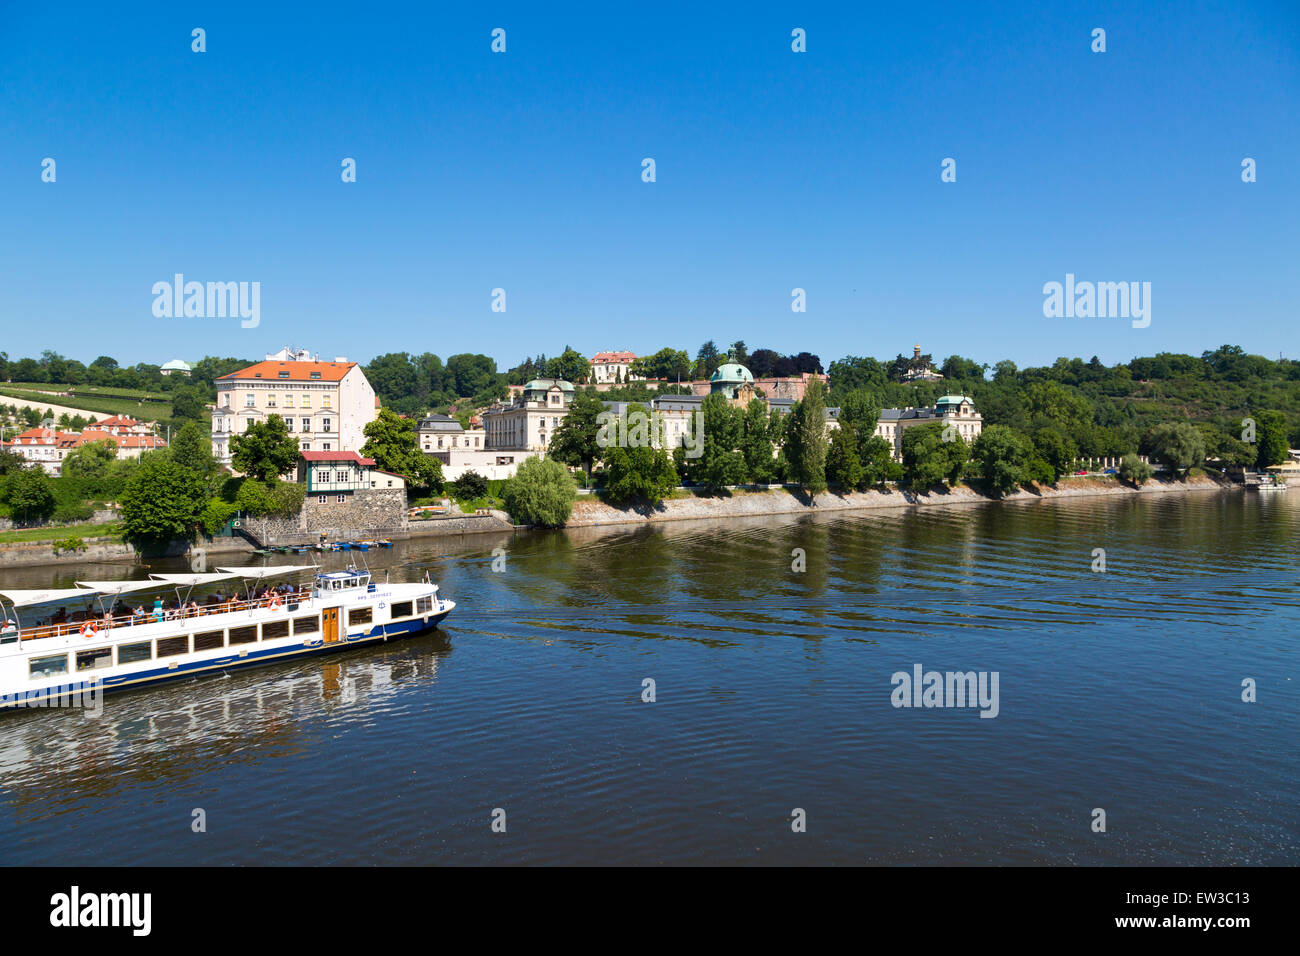 View over the River Moldau in Prague, Czechia - Stock Image